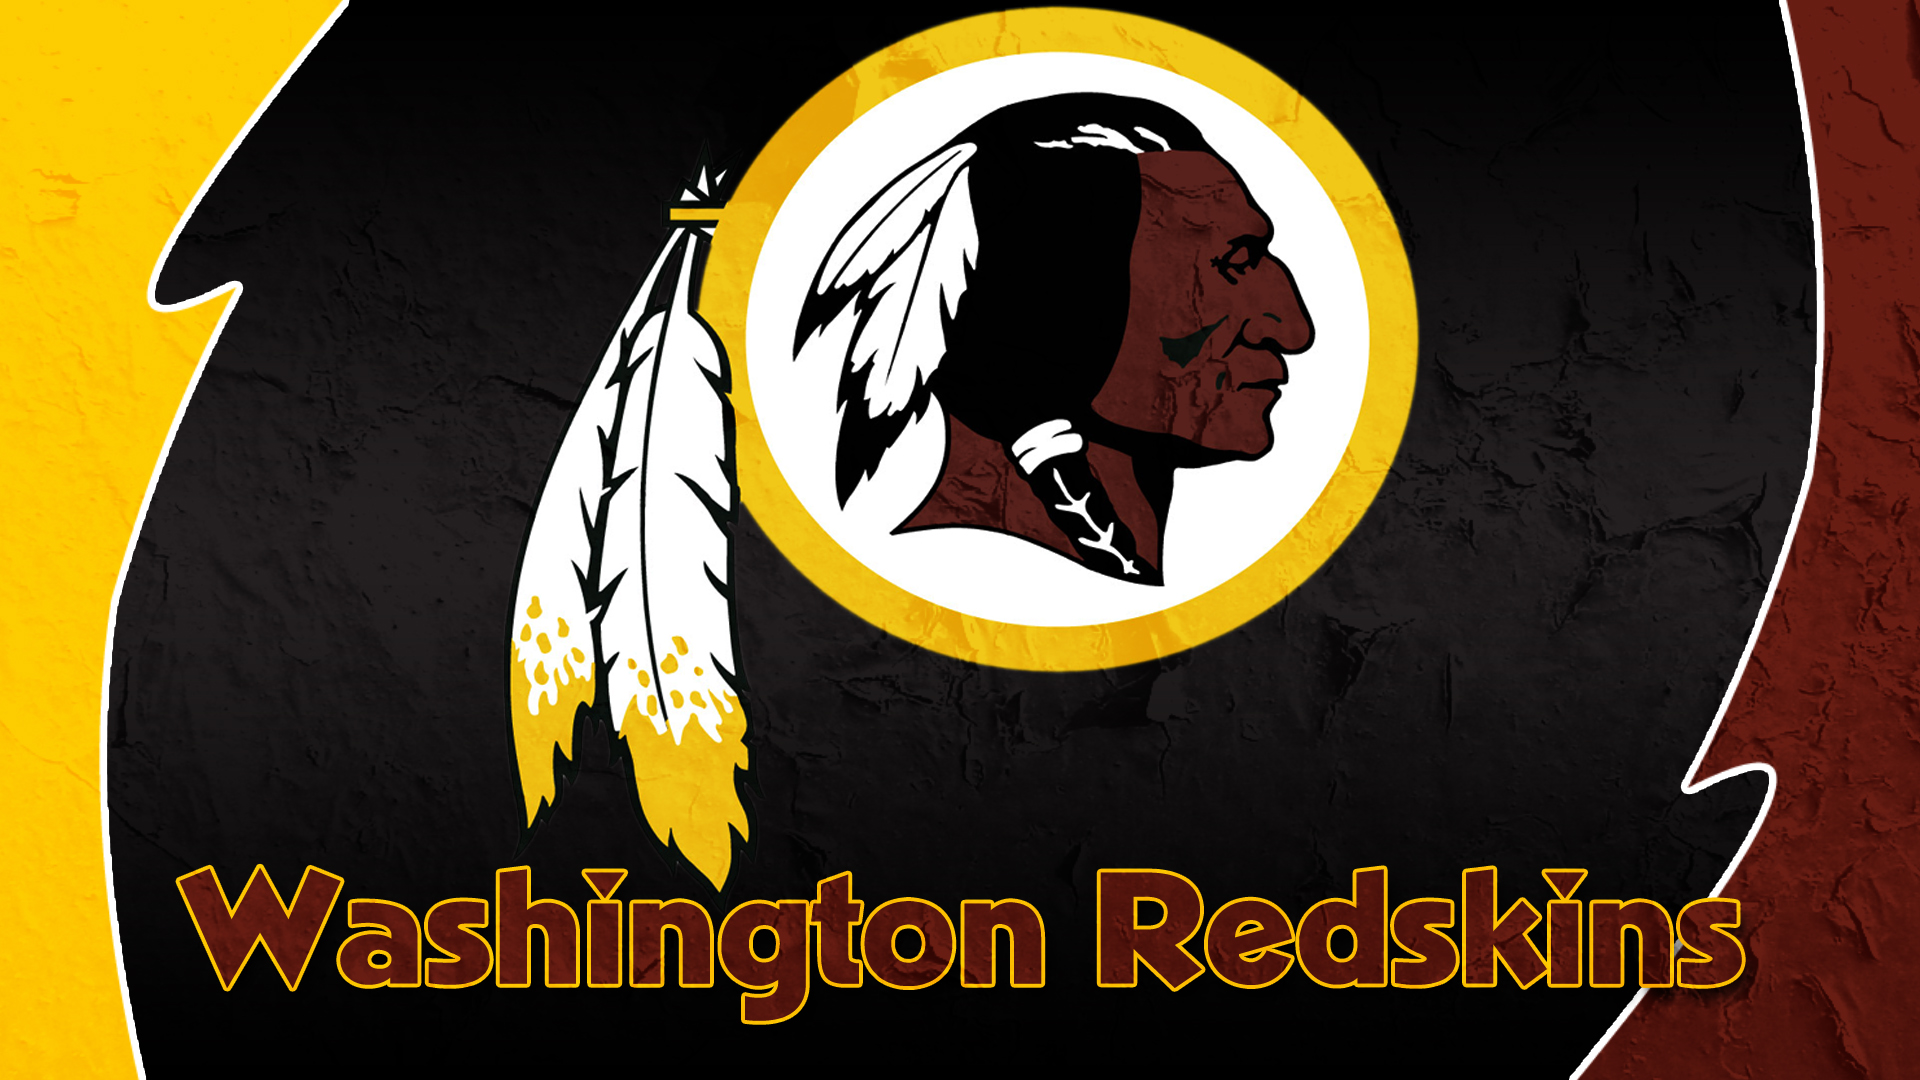 Washington Redskins Wallpaper by rebleached 1920x1080